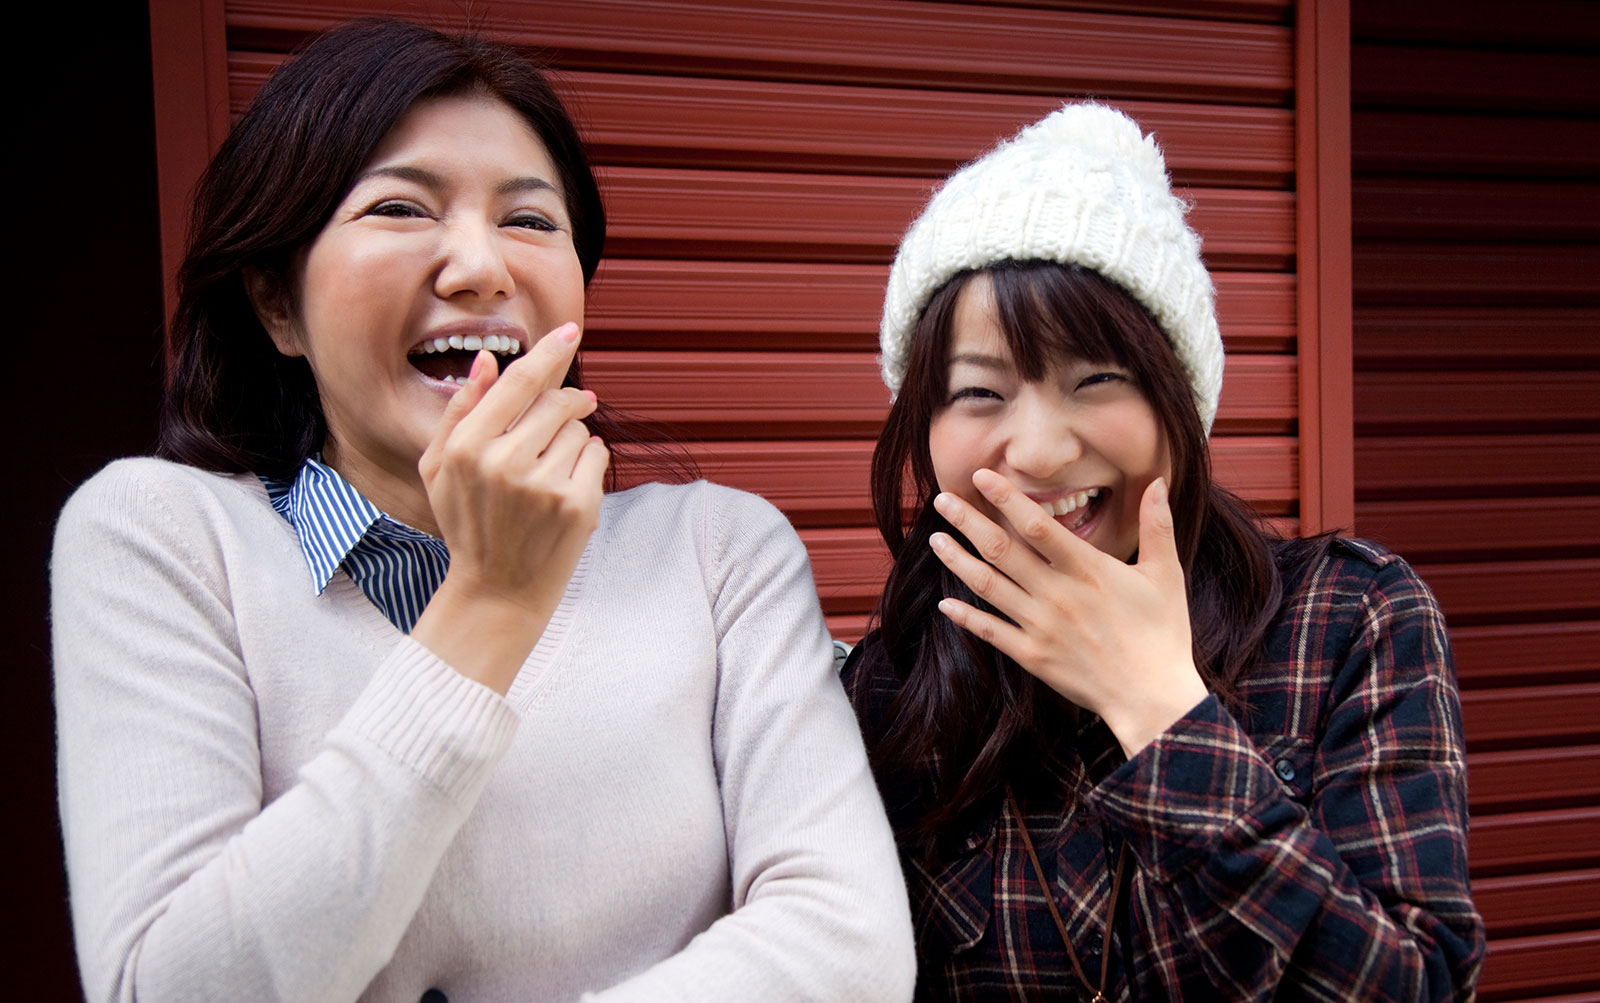 Why do Japanese women cover their mouth while laughing?